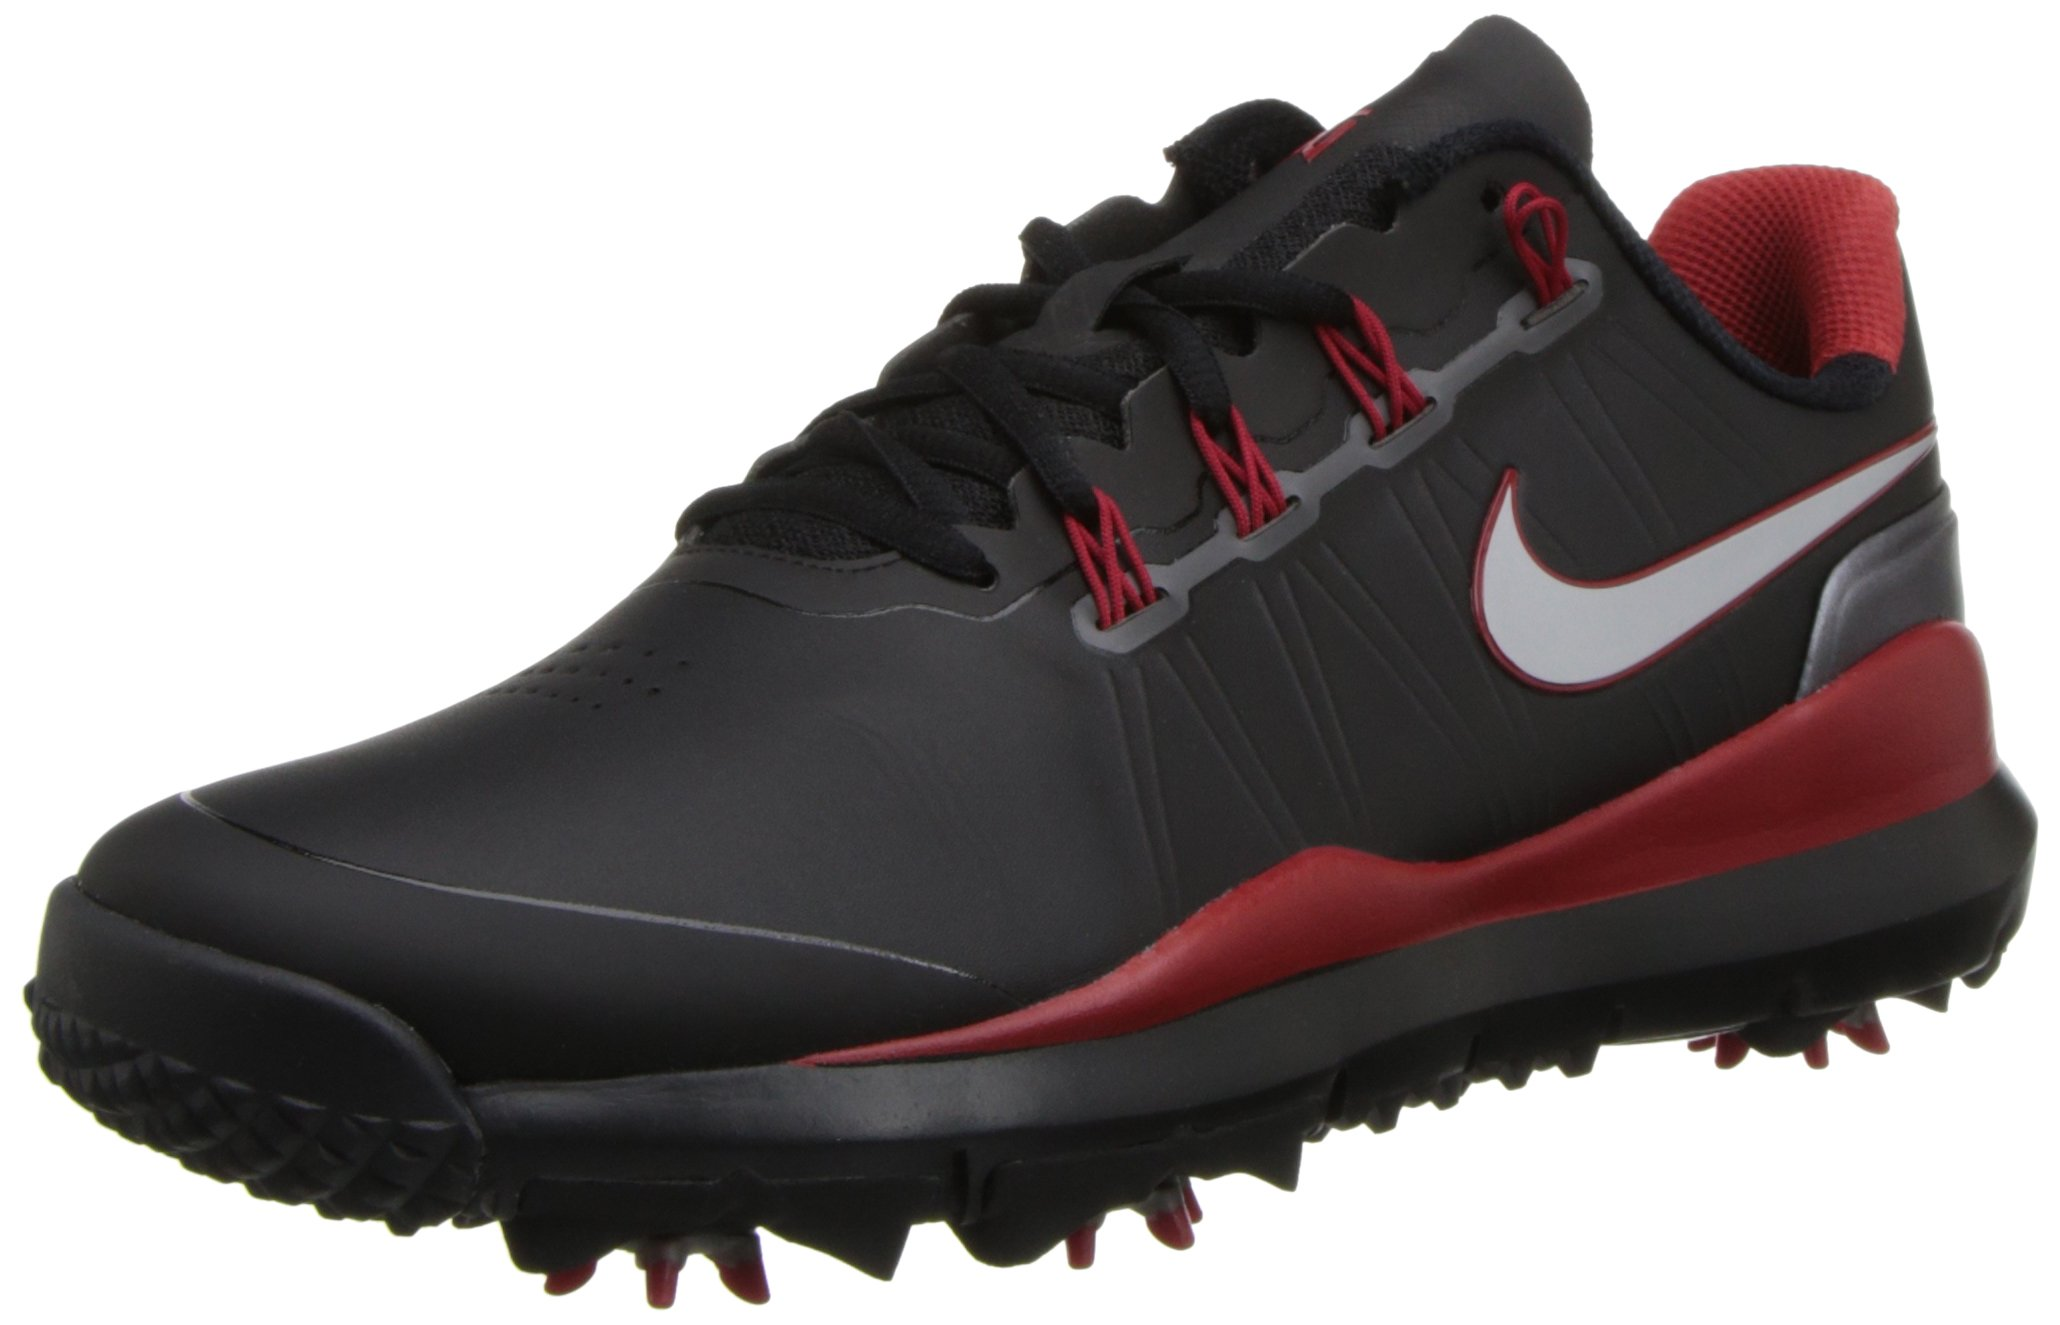 Nike Golf Men's TW '14 Golf Shoe